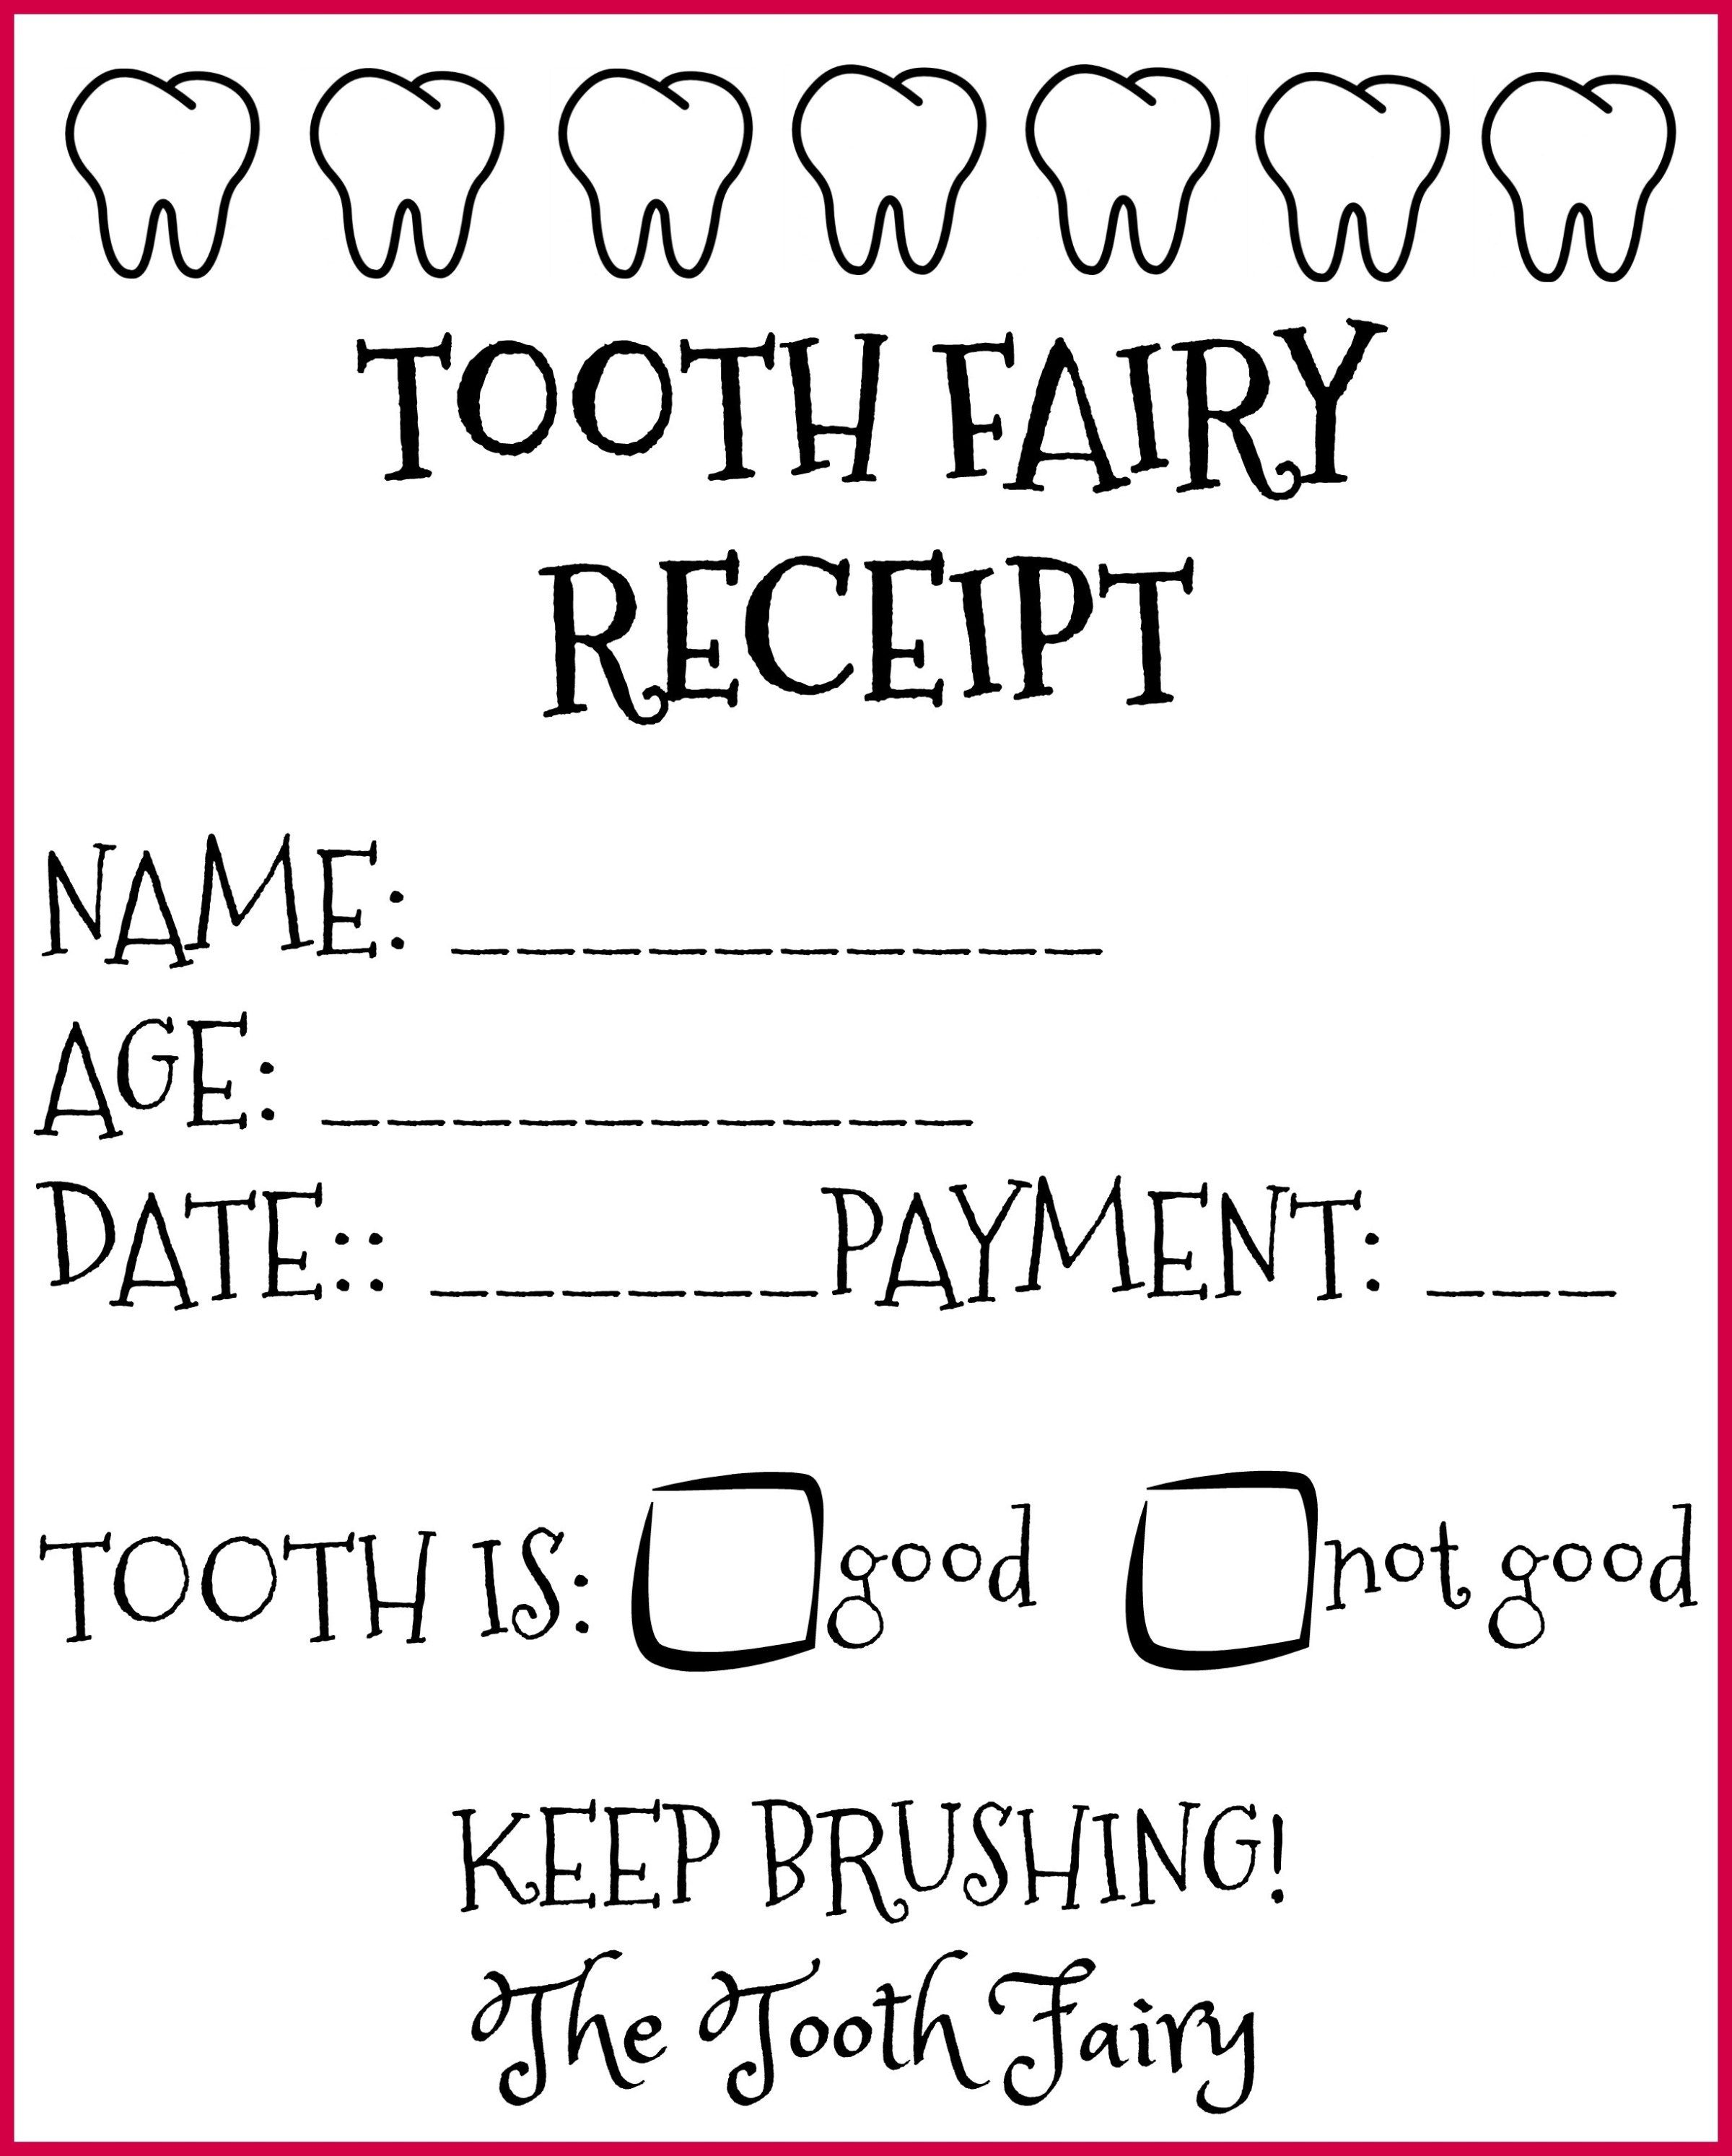 The Tooth Fairy Came Free Printable Tooth Fairy Receipts In Spanish And English Ladydeelg Tooth Fairy Letter Tooth Fairy Receipt Tooth Fairy Letter Template